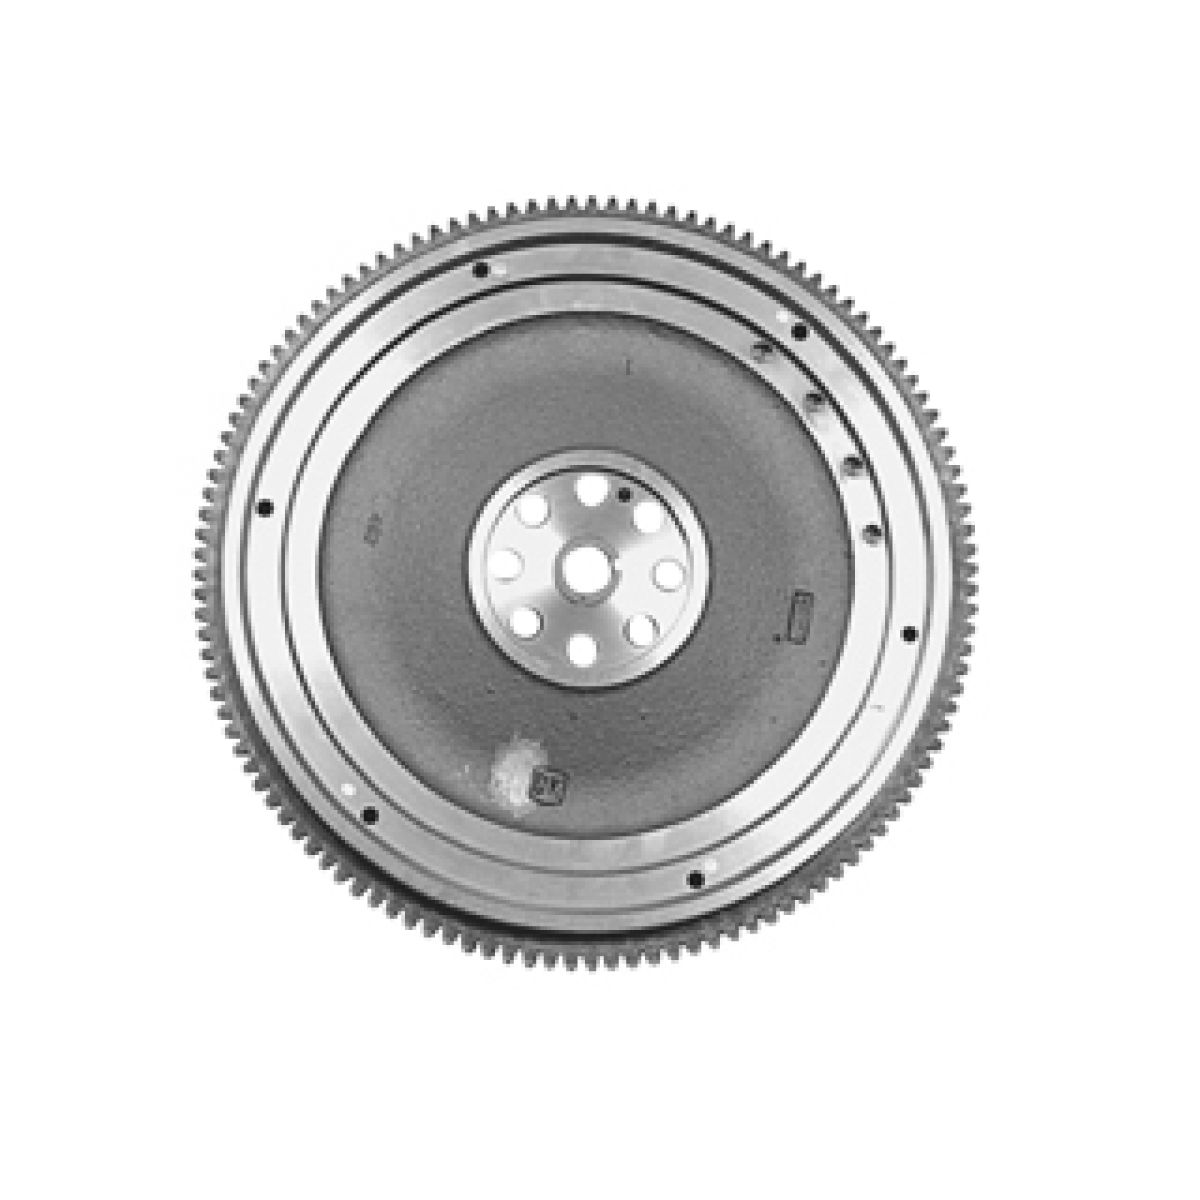 Flywheel For Honda Accord Prelude CL 2.2L 2.3L With Manual